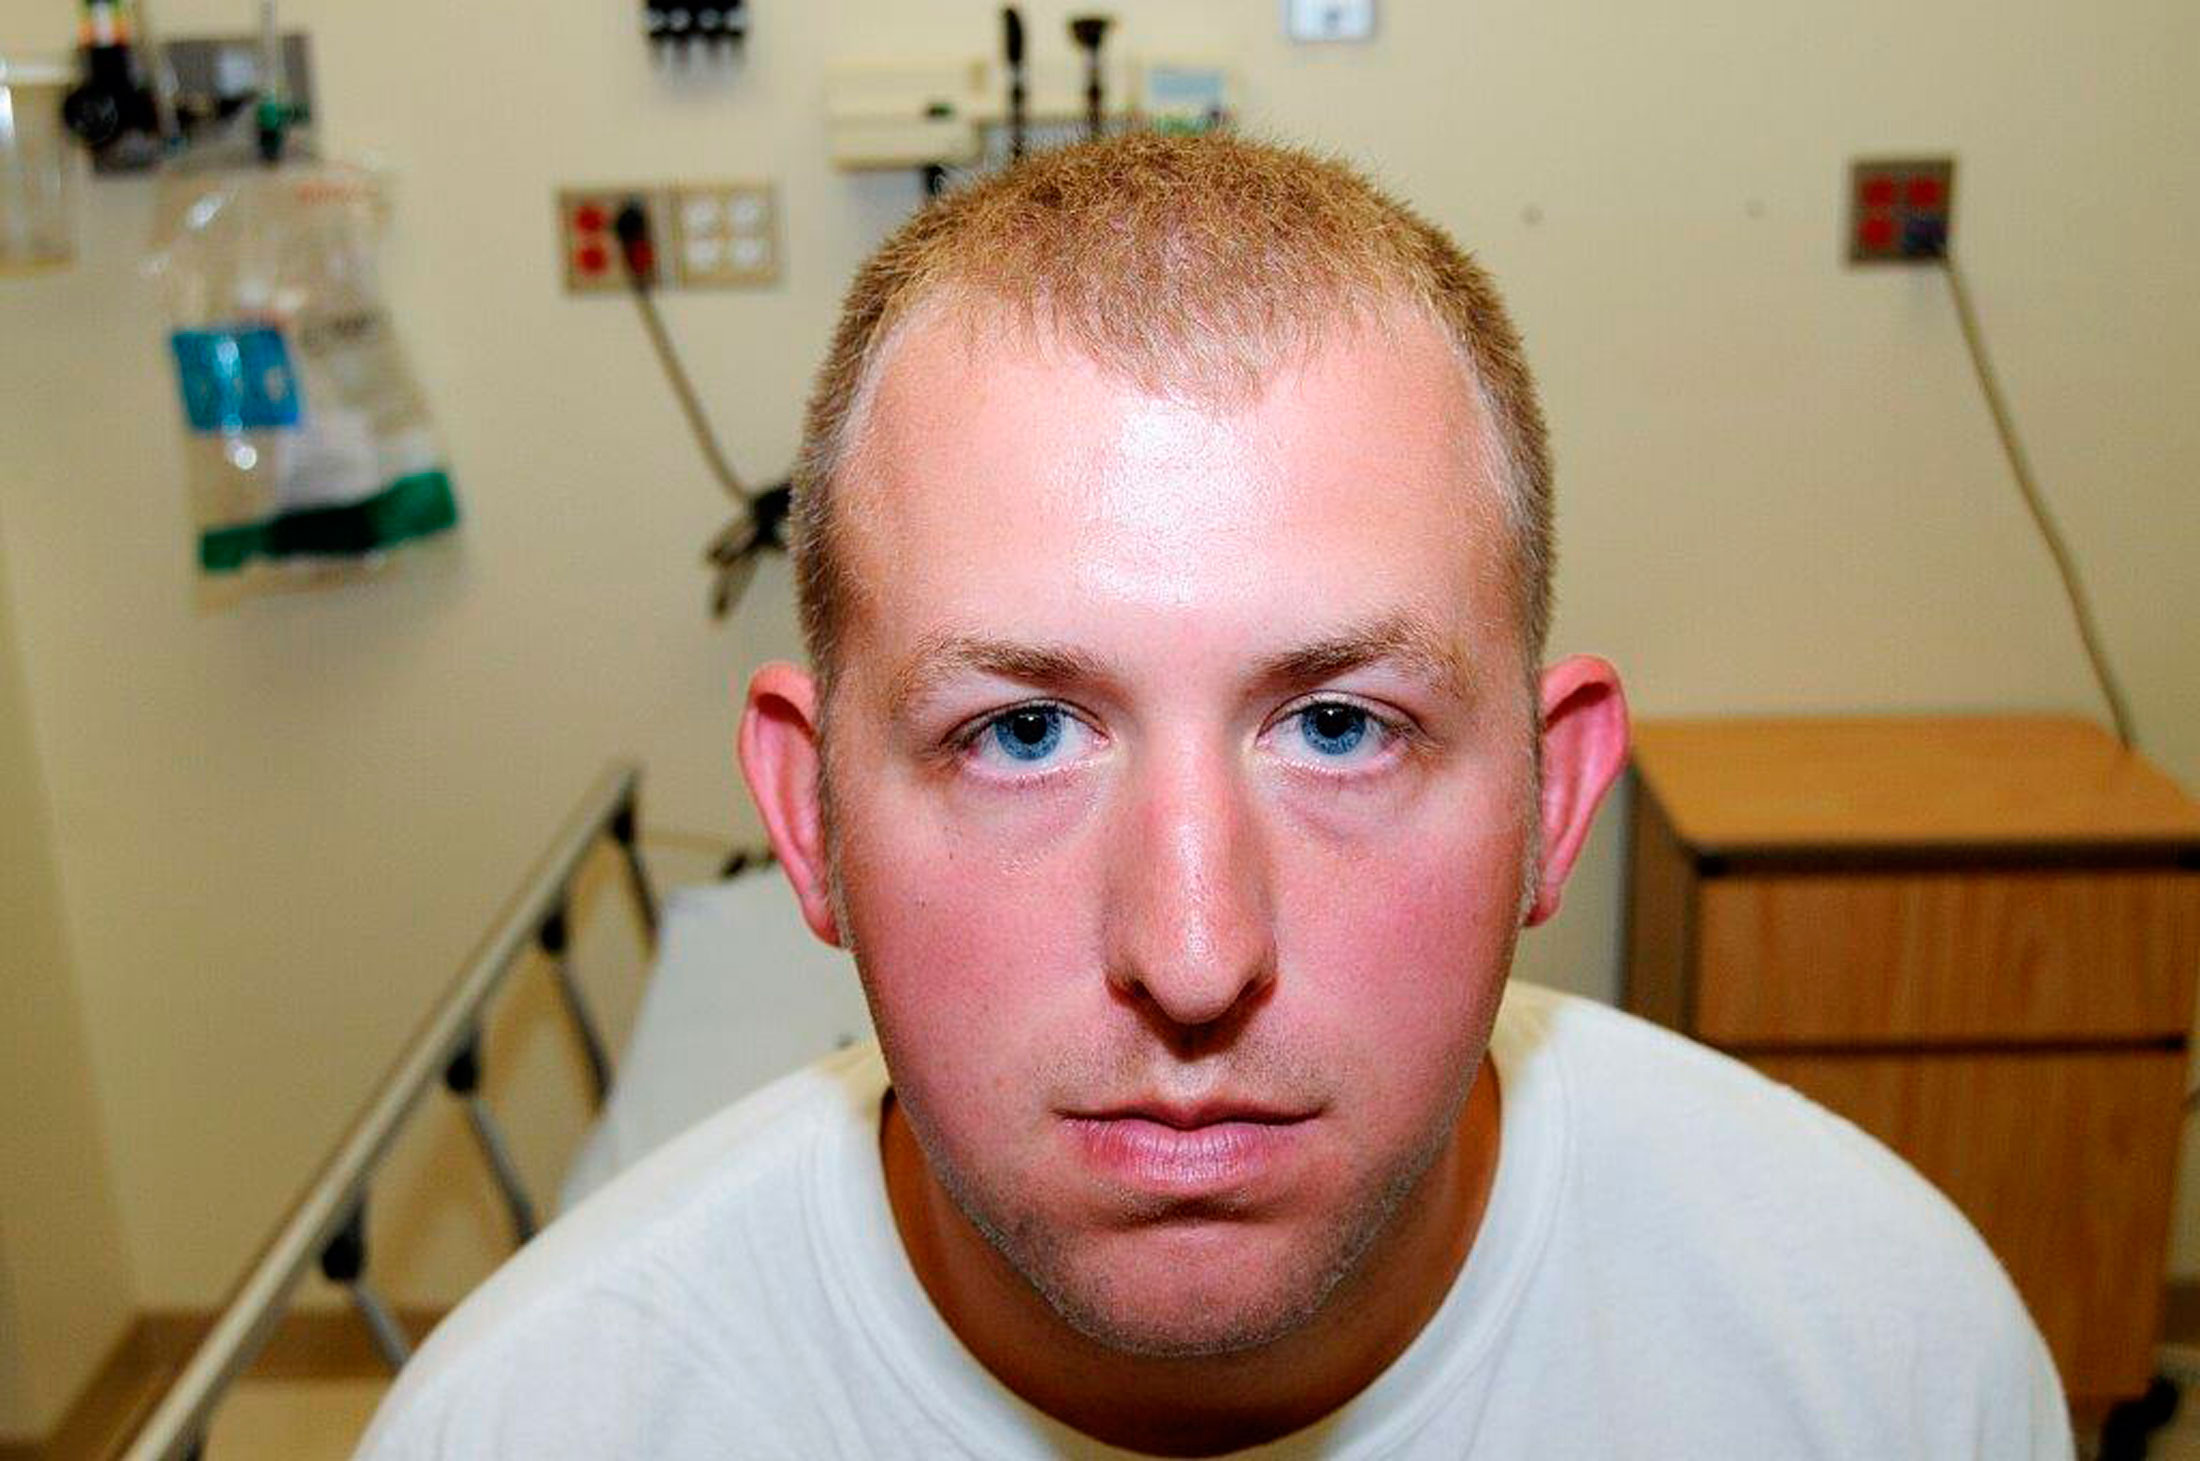 Photo of Officer Darren Wilson as released by the prosecutor's office on the day of the altercation with Michael Brown on August 9, 2014 .